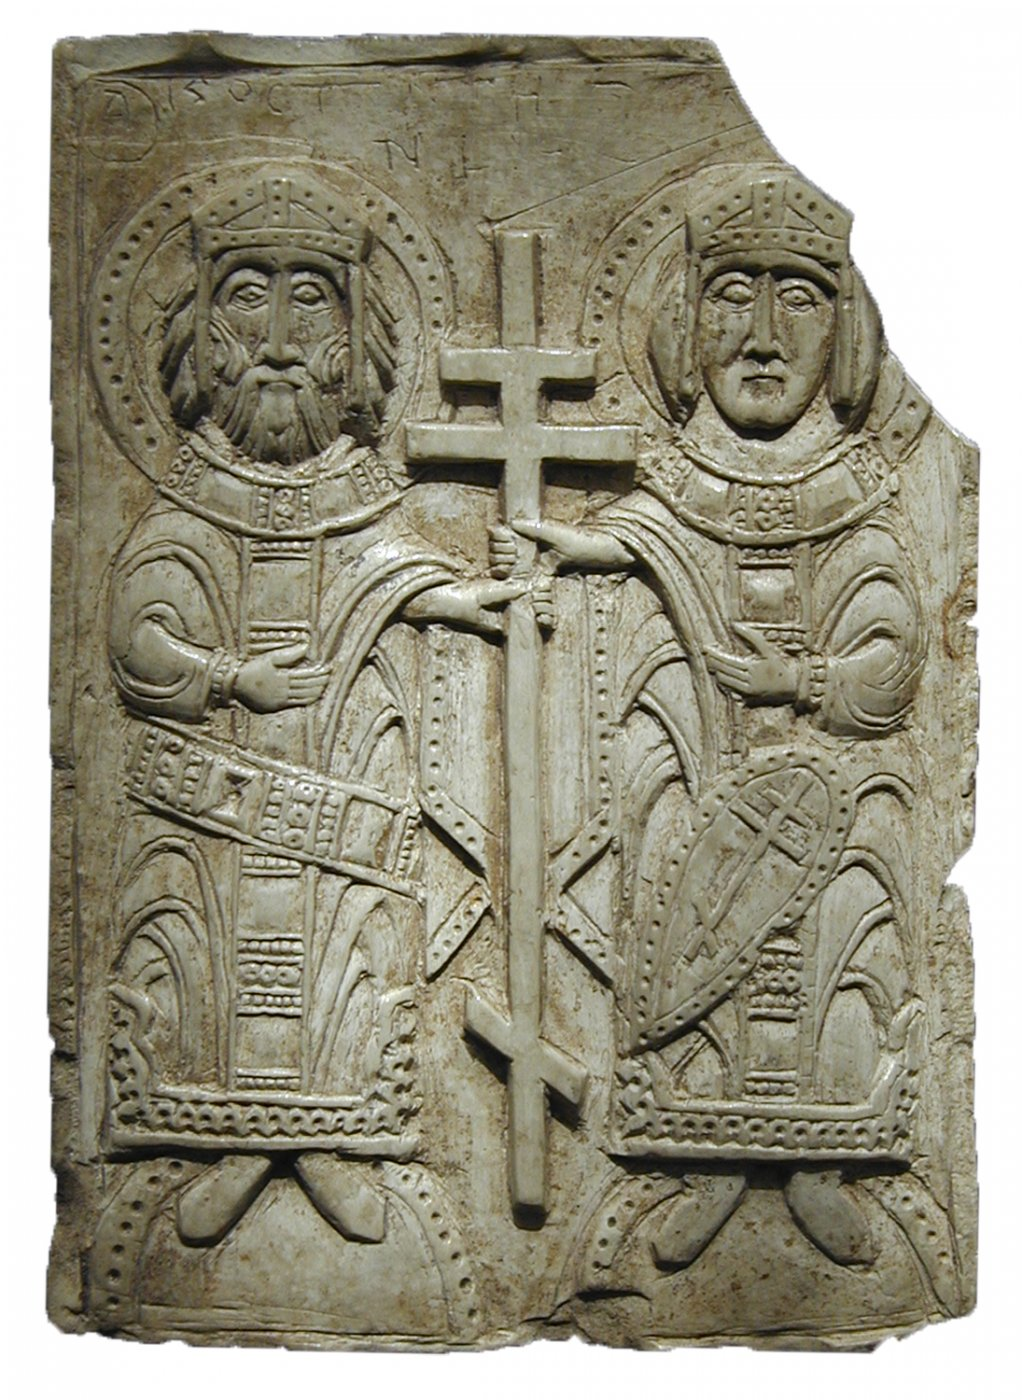 Icon with images of St. Constantine and Helen. 12th century. Steatit, engraving. 6,2x4,4x0,6 cm. Excavations by G. Shtykhov. Upper Castle, Polotsk, 1967.